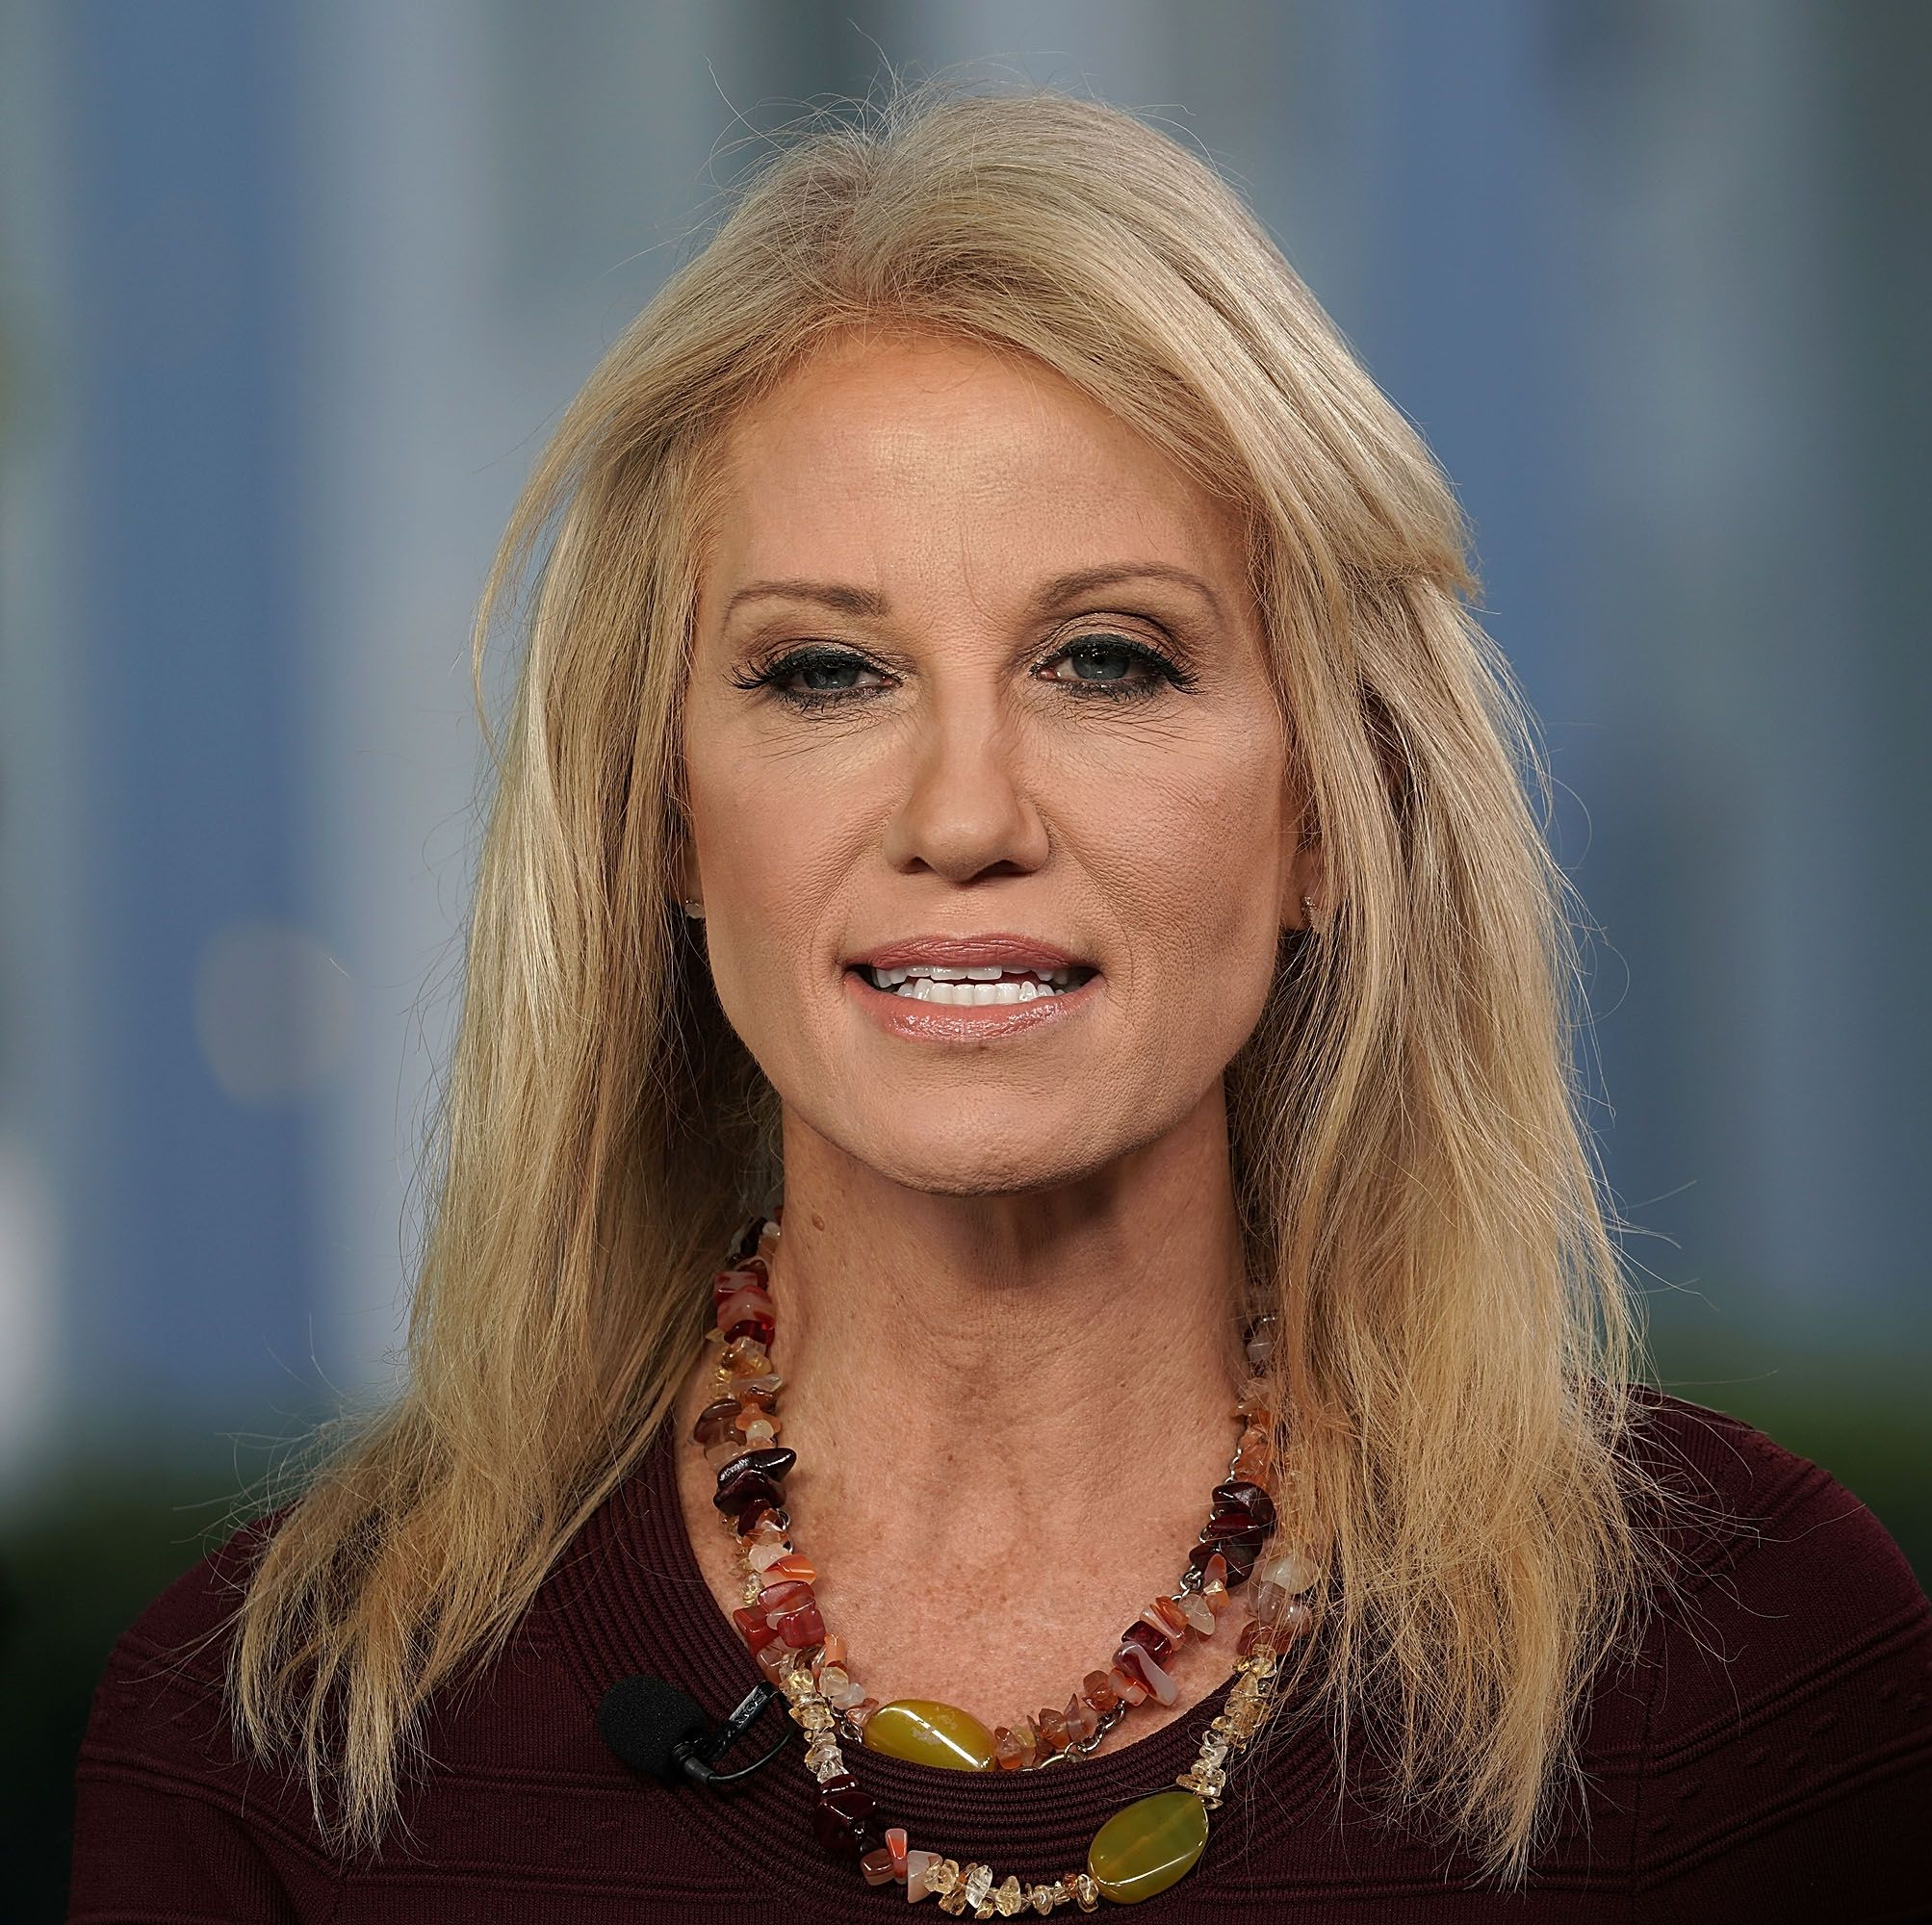 Kellyanne Conway Told Fox News Viewers to Read the New Zealand Shooter's Manifesto 'In its Entirety'